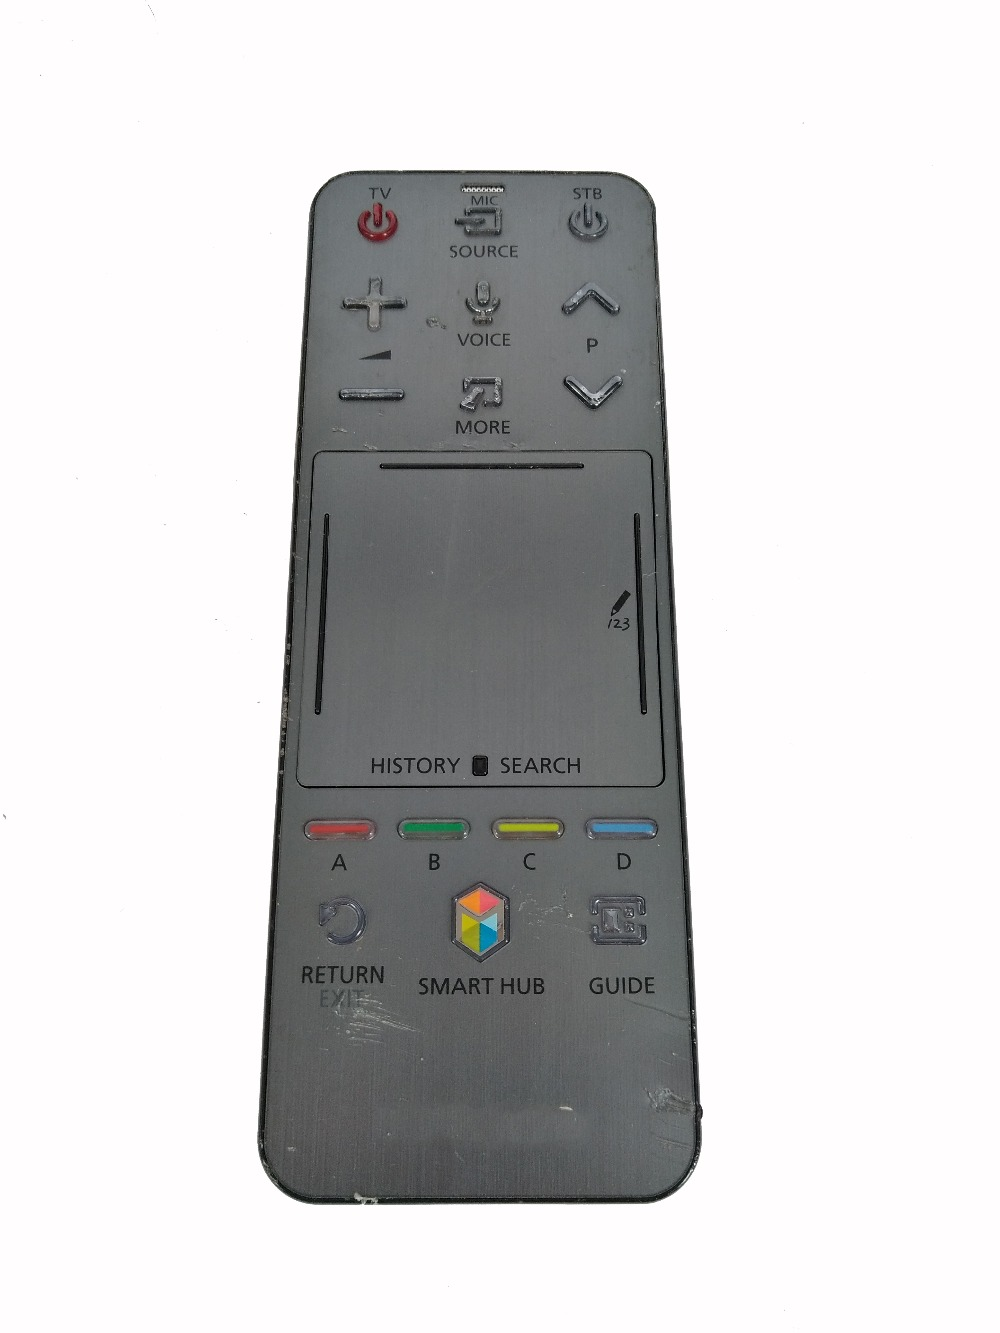 Used Original Remote control FOR SUMSUNG AA59-00761A RMCTPF1AP1 Smart 3D LED LCD TV HUB Touch Voice Controller With Scratches used original bn59 01242a smart voice remote control with scratches suit for samsung 4k uhd tv mu7009 mu8009 ks9090 ks9590ku6679